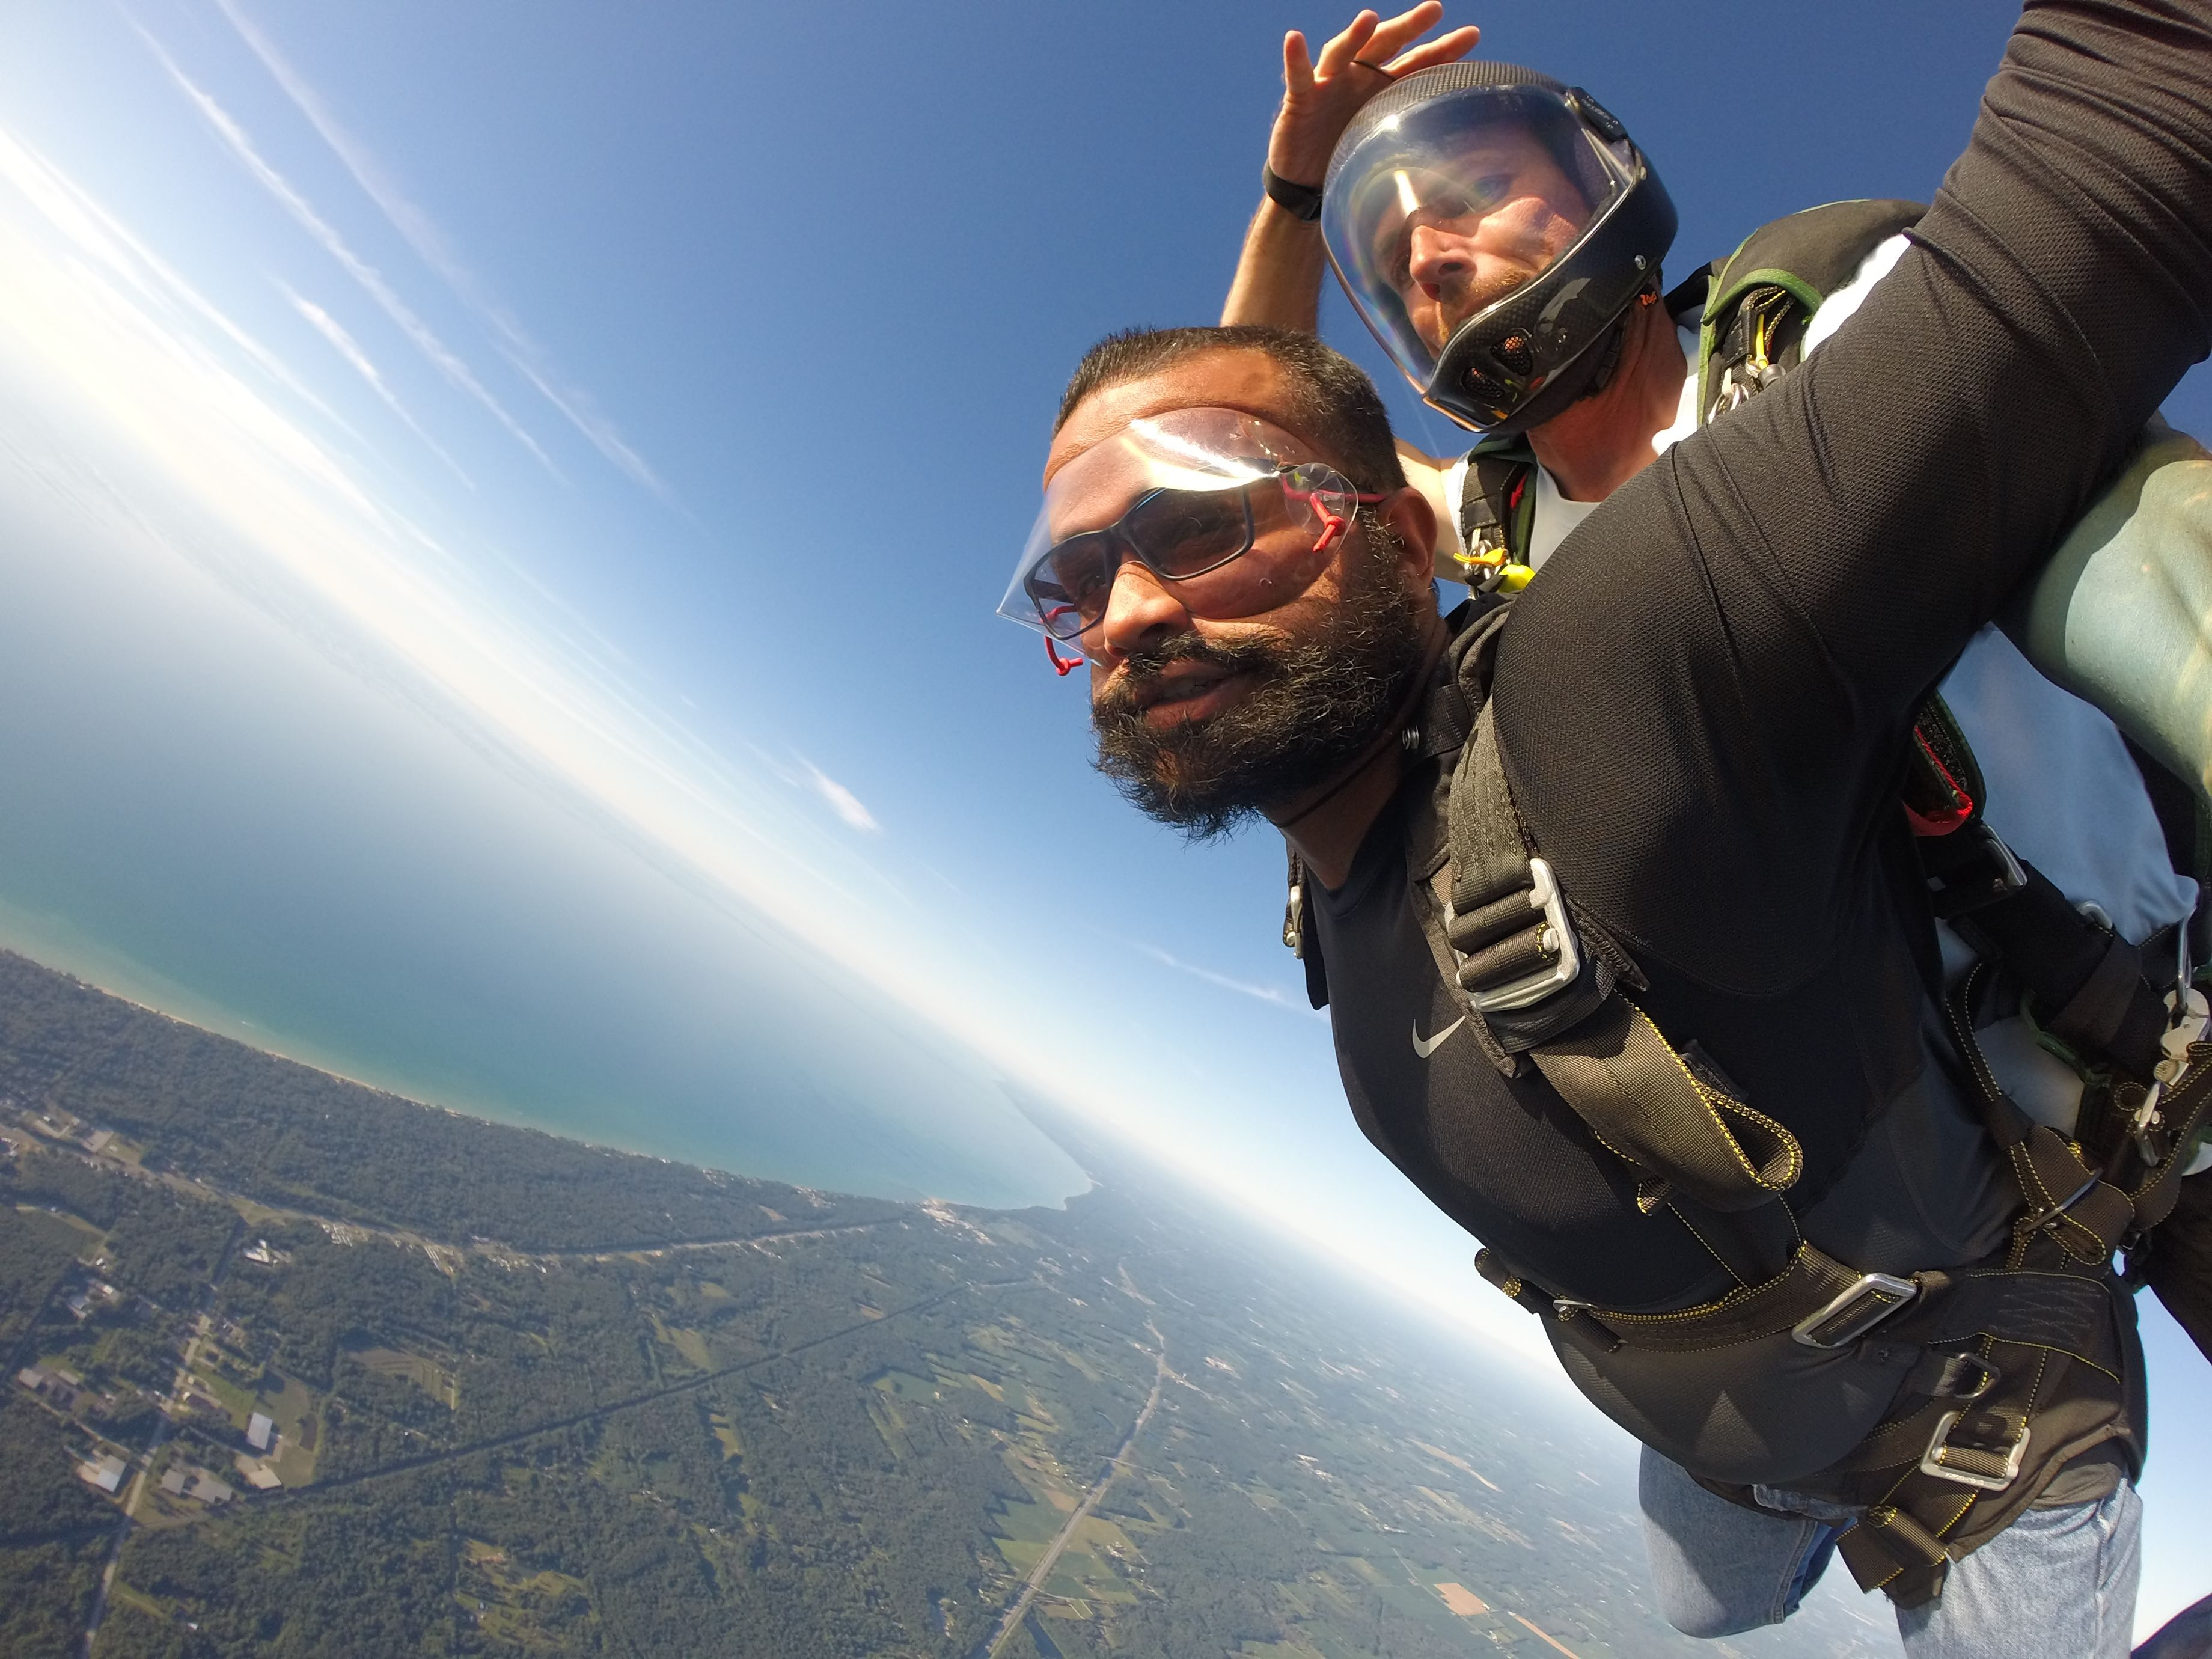 Best Skydive View In Chicago Next To Lake Michigan And See The Skyline